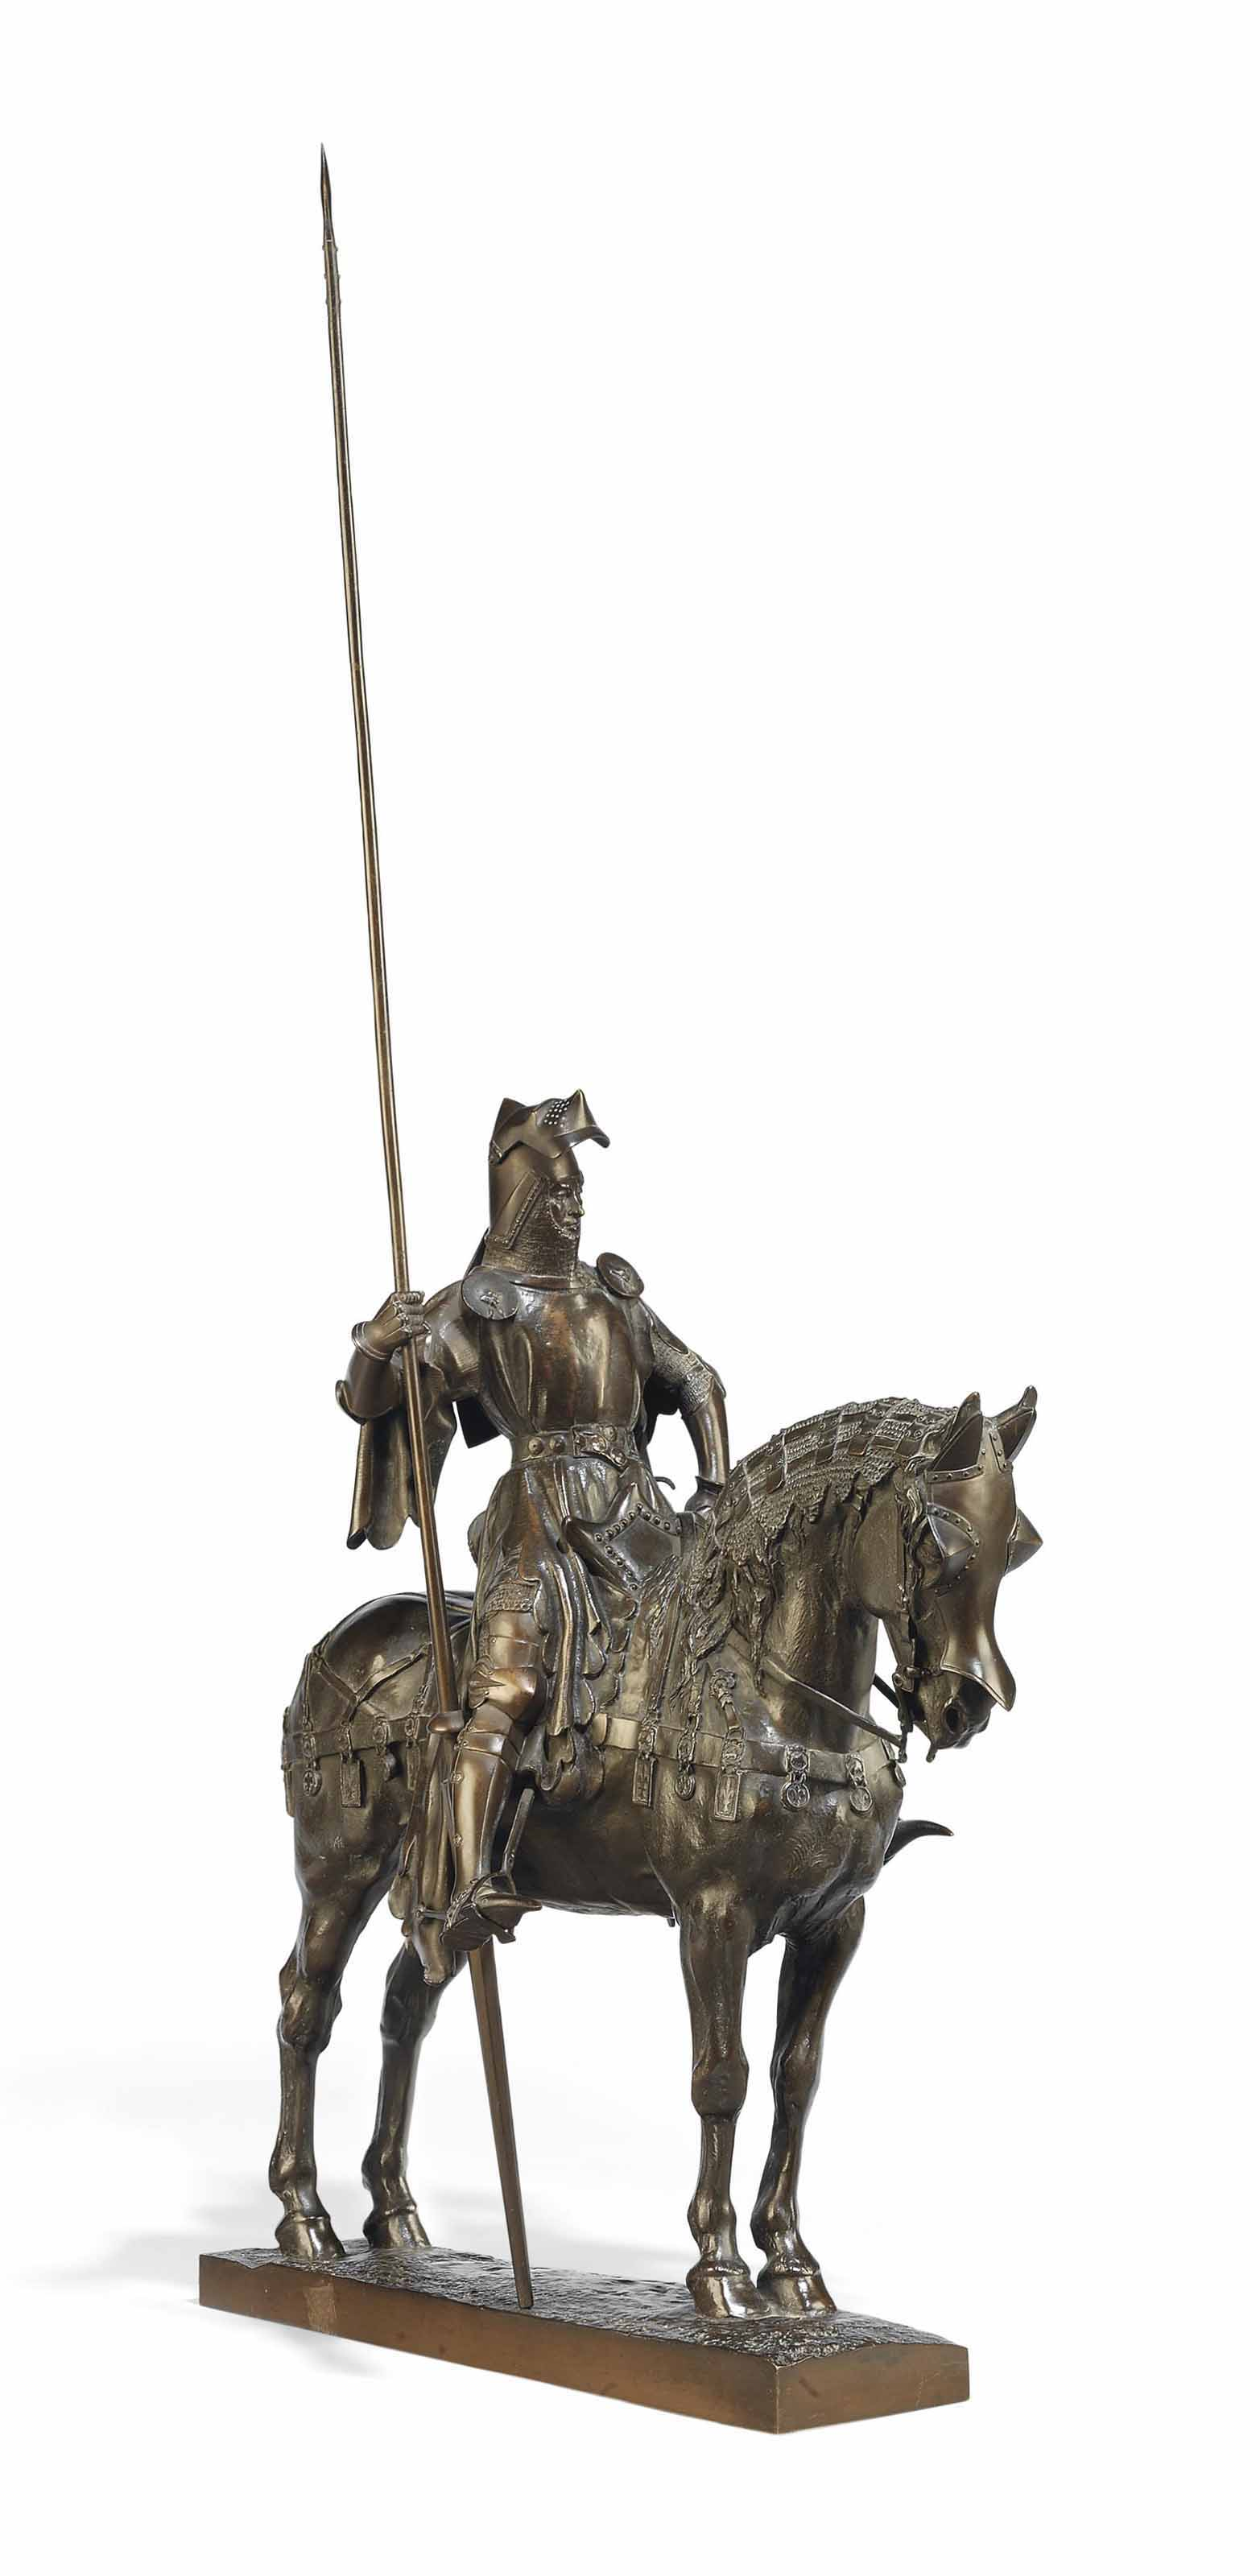 A FRENCH BRONZE GROUP OF LOUIS D'ORLEANS ON HORSEBACK